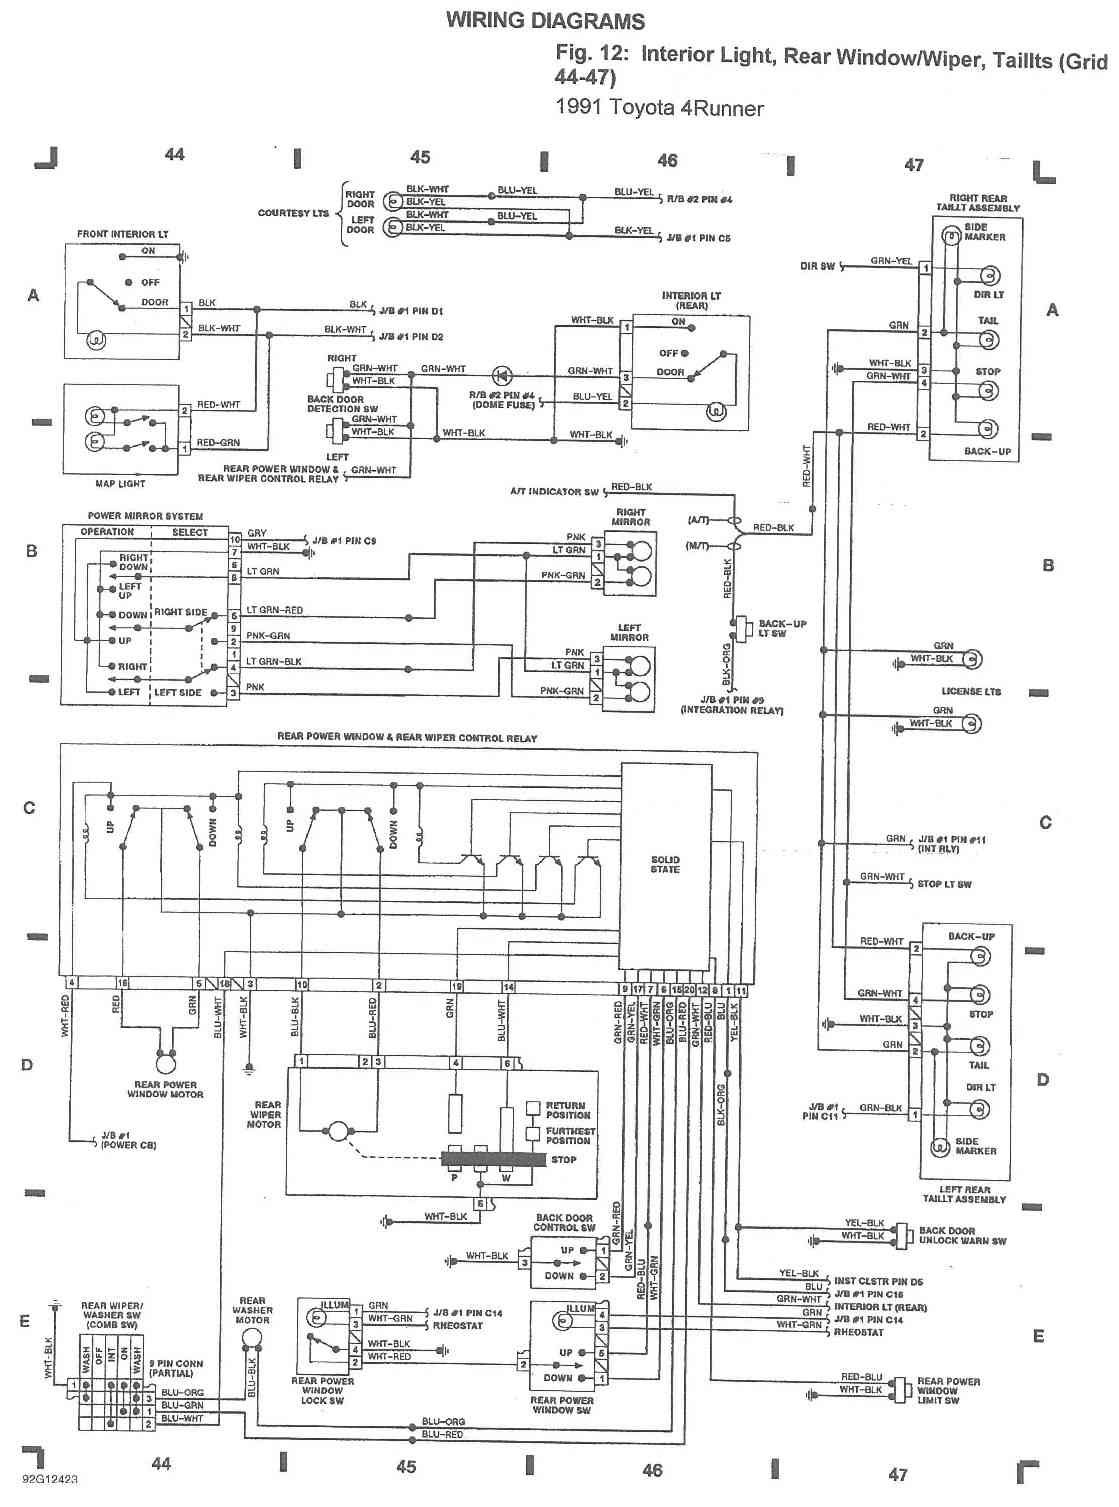 365531 Wiring Diagram Free Online 1995 4runner on 89 22re engine diagram